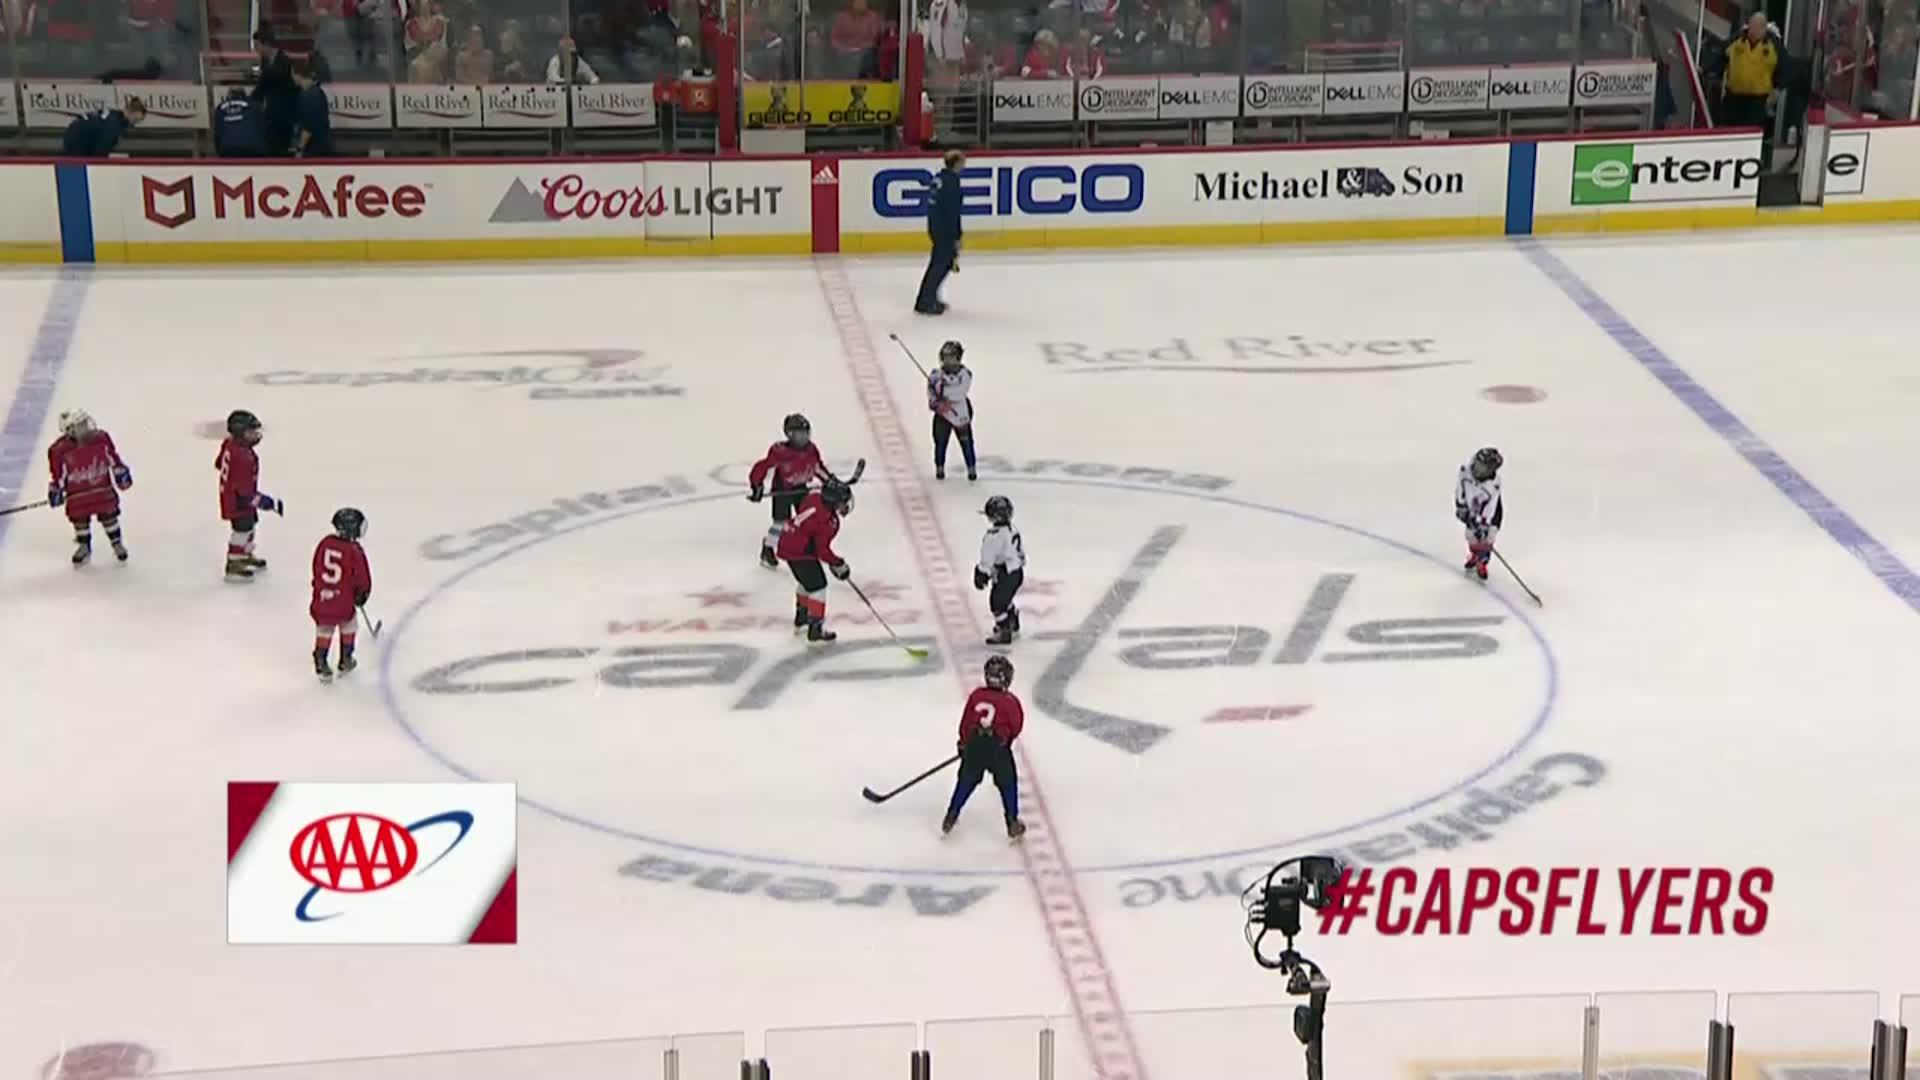 #CapsFlyers Mites on Ice 1/31/18